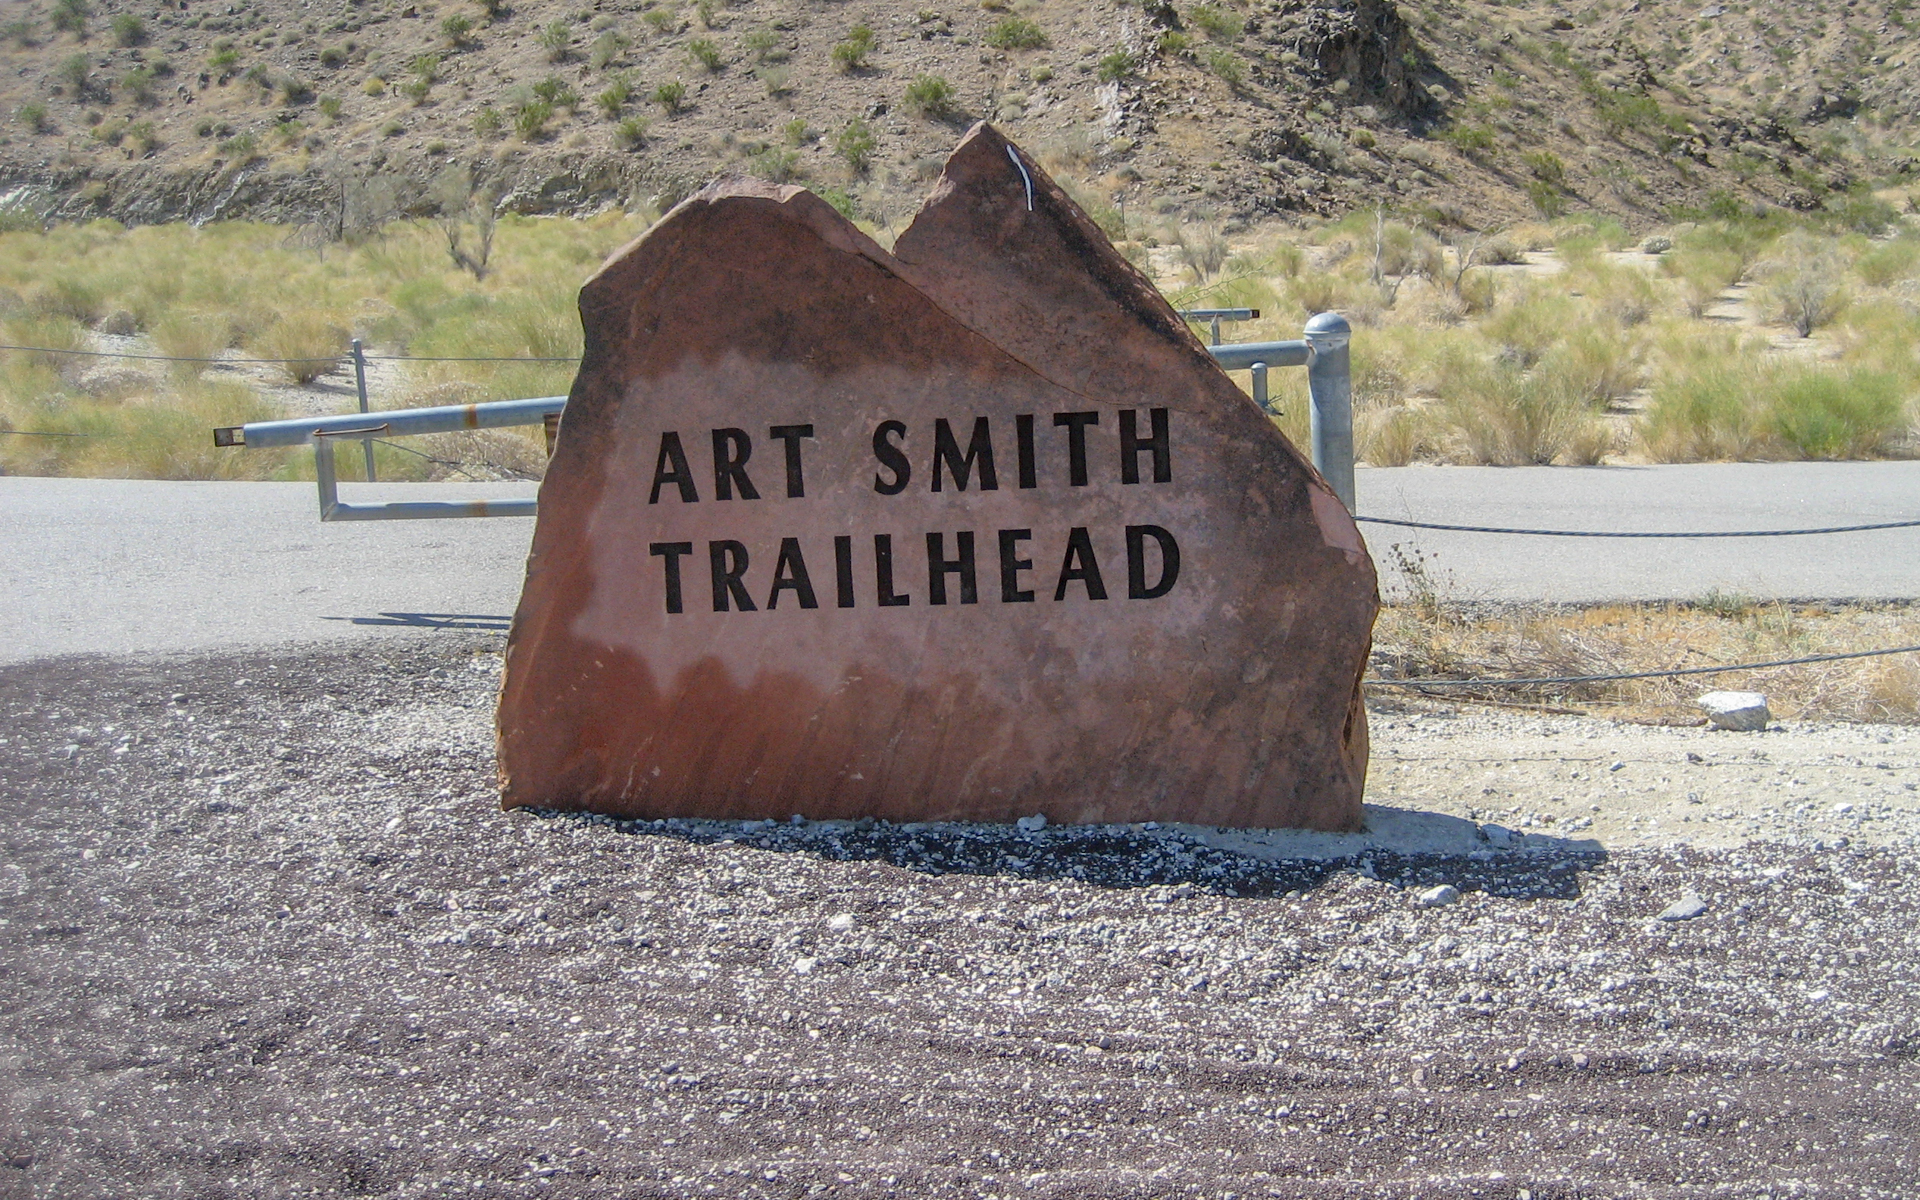 Art Smith Trailhead